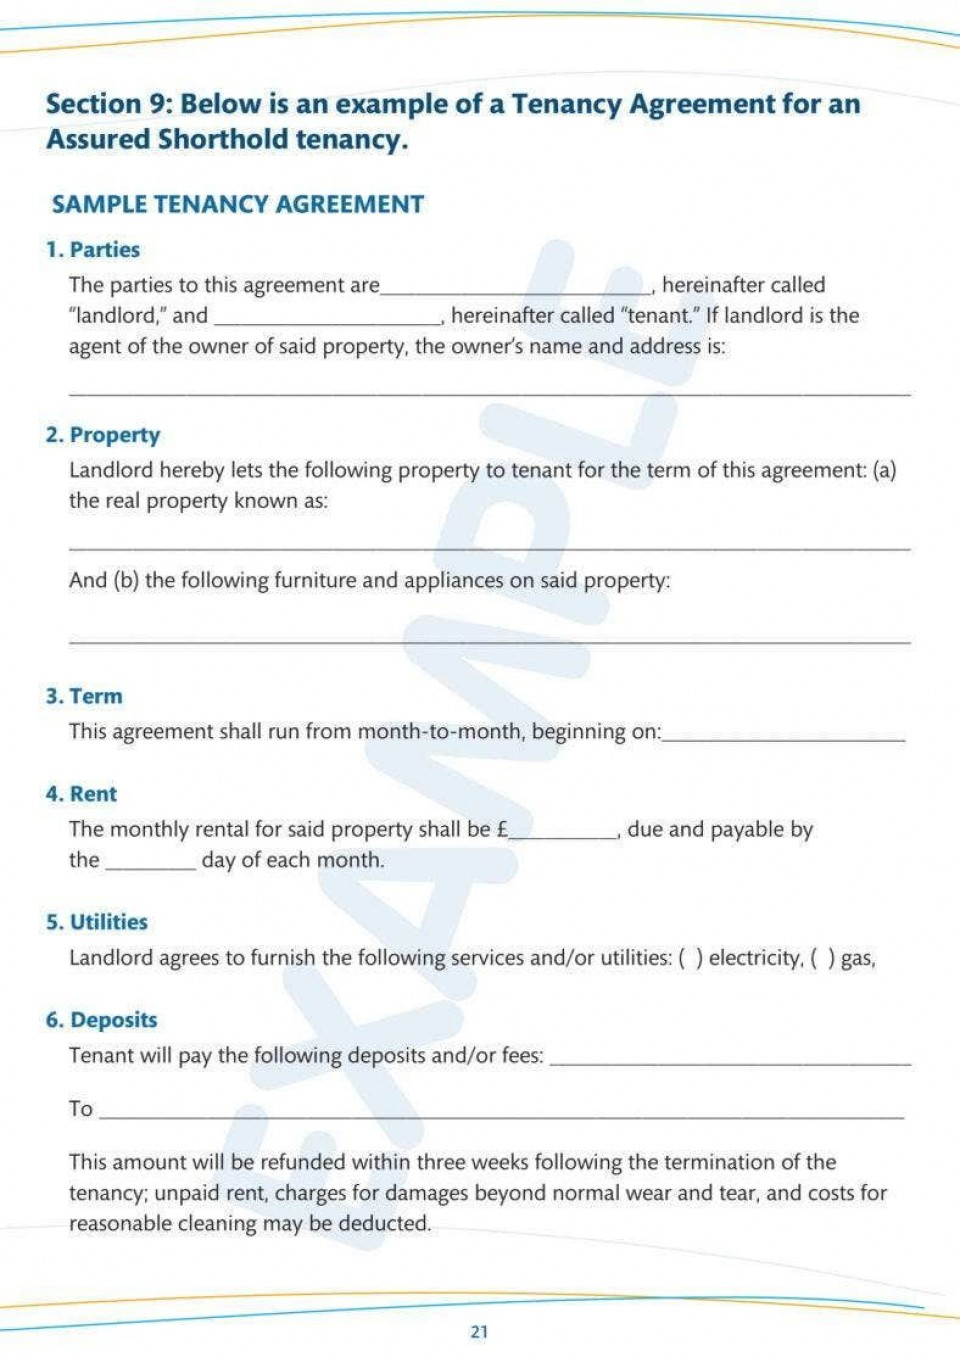 007 Amazing Tenancy Agreement Template Word Free High Definition  Uk 2020 Rental Doc Lease960